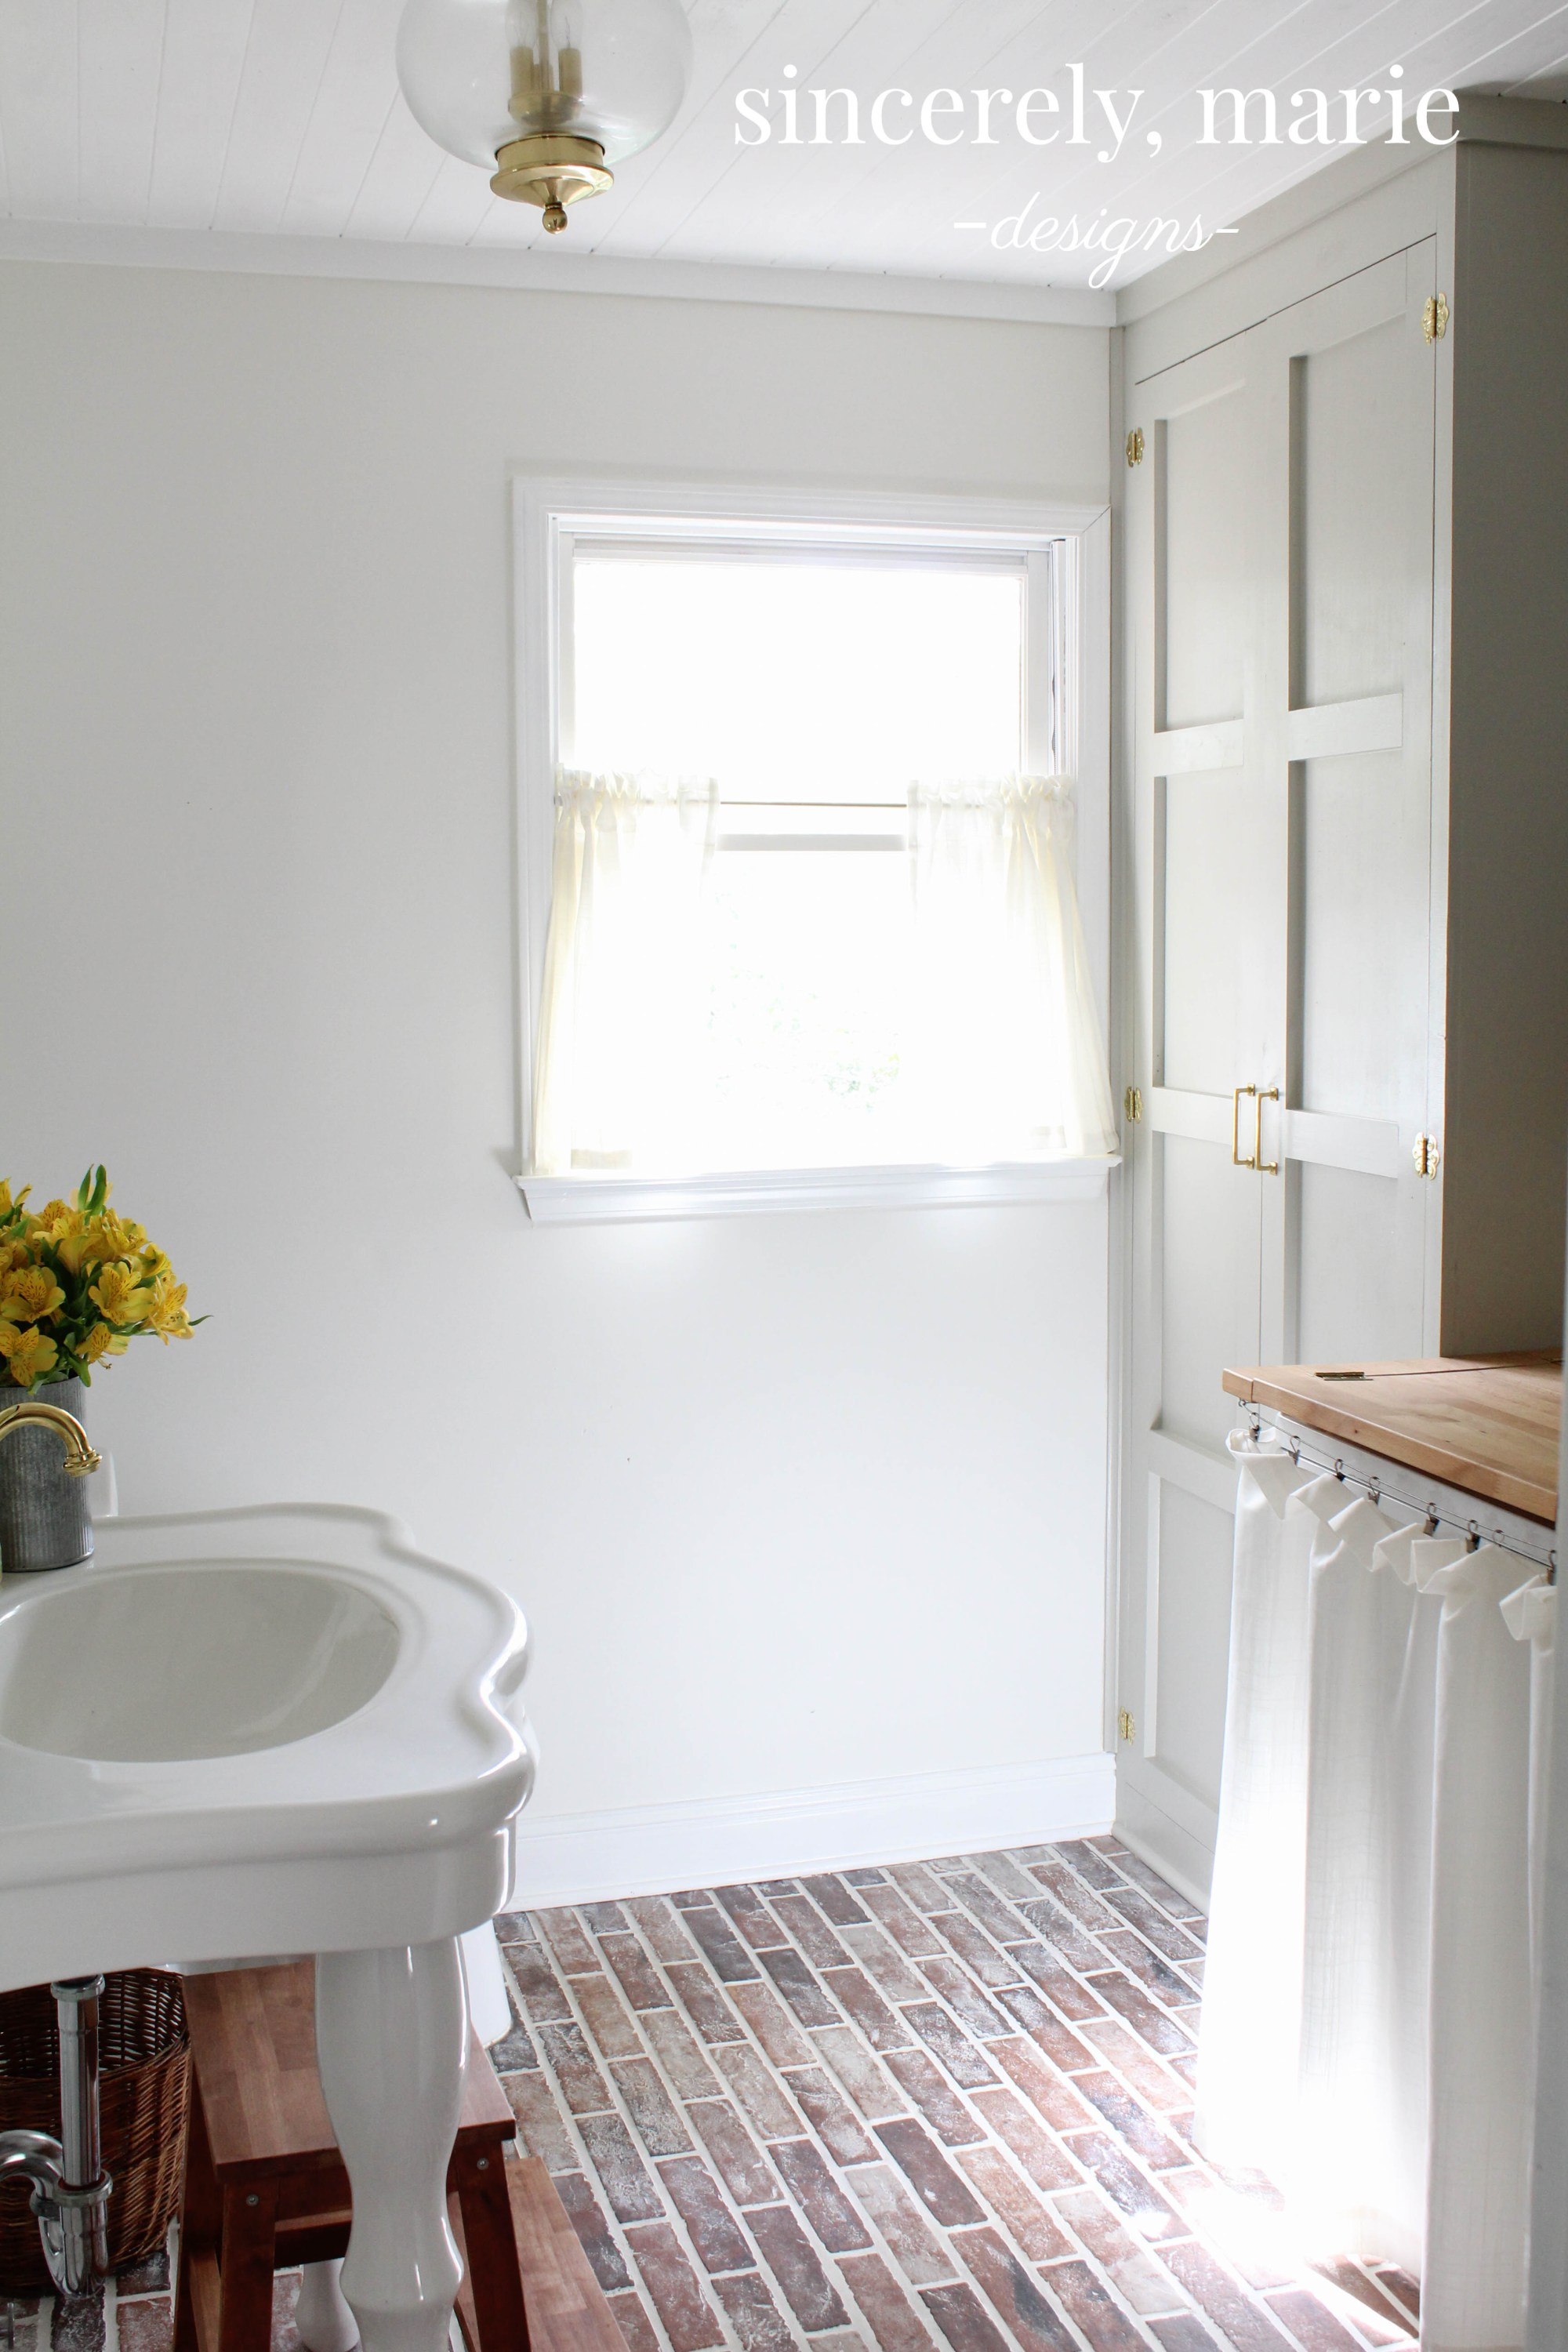 Brick floor bathroom - As Always Here At The Cottage Market We Would Like To Send Out Tons Of Appaws And Applause To All Of Our Blogger Friends For Sharing Their Talents And